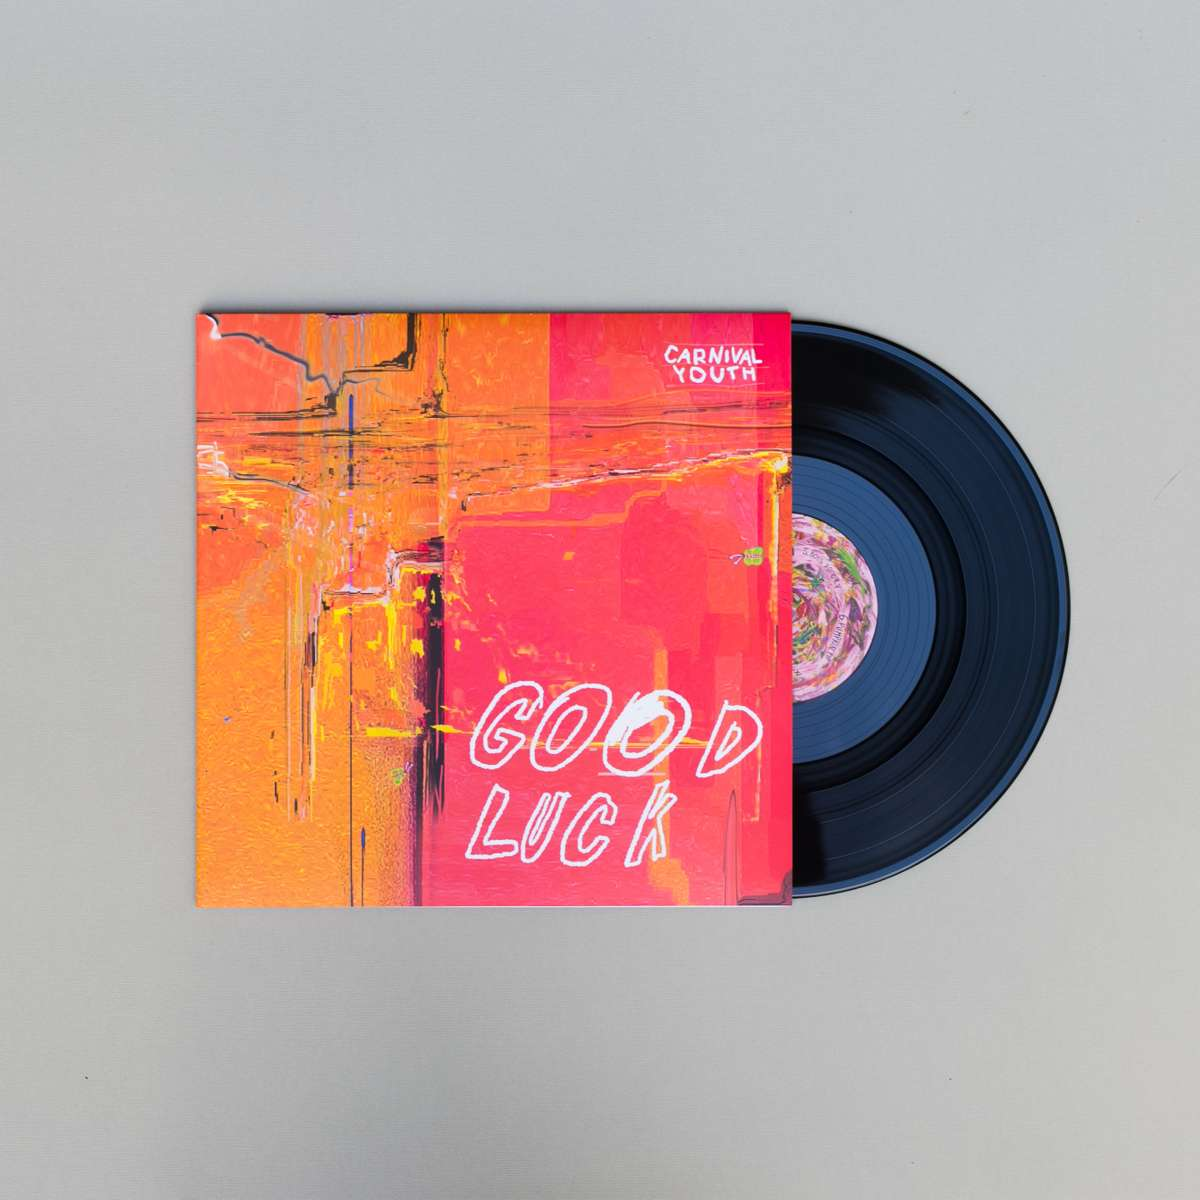 """Good Luck 12"""" Double Vinyl - Carnival Youth"""